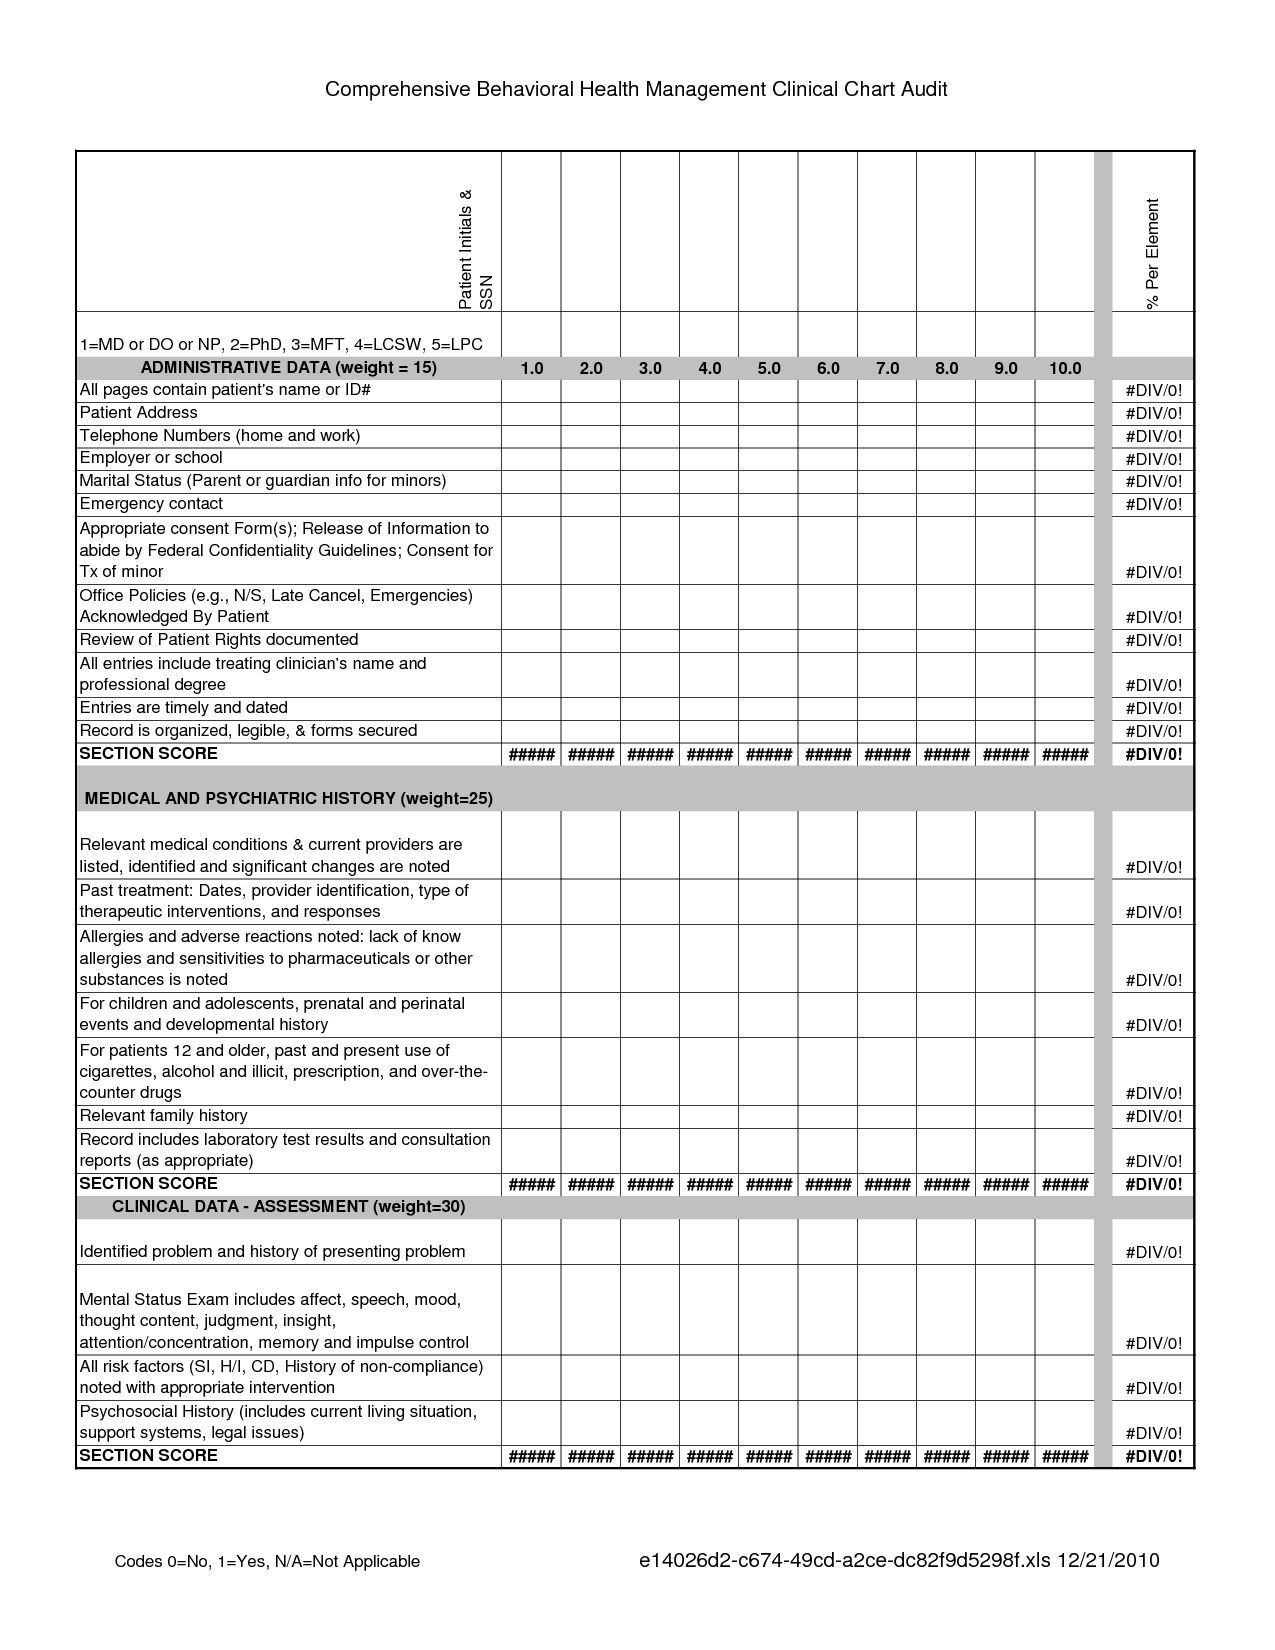 Medical Record Chart Audit Template